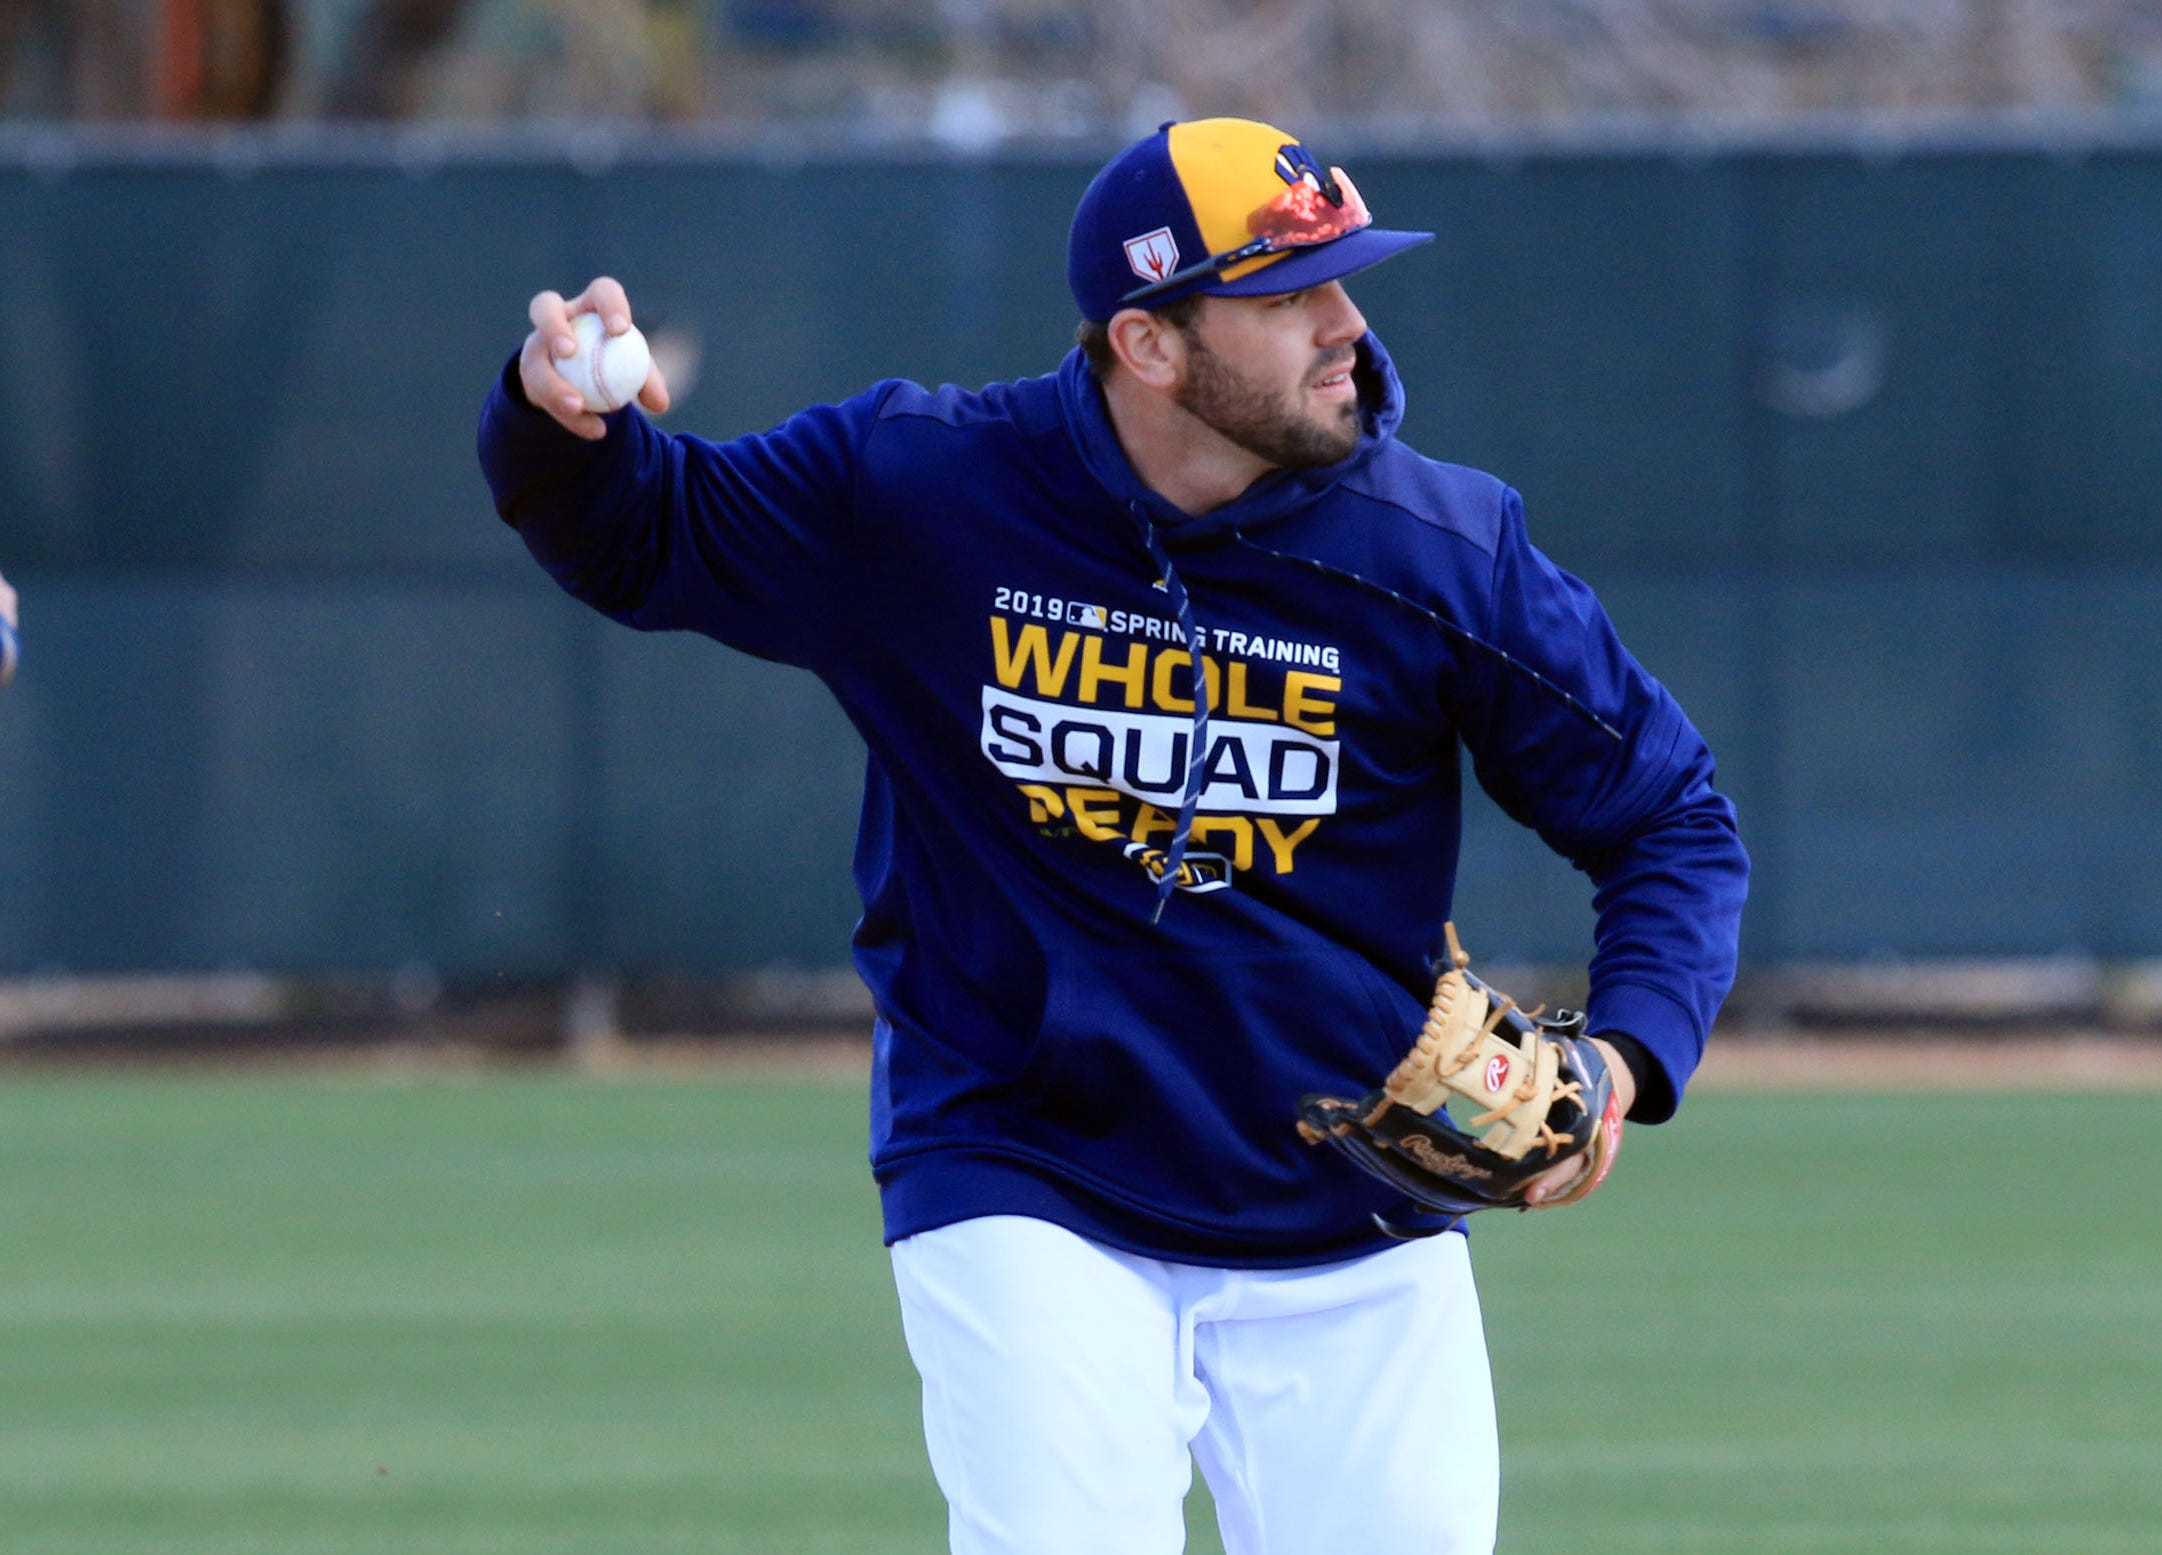 Mike Moustakas of the Milwaukee Brewers completes a double play, during spring training drills, Tuesday, February 19, in Phoenix, Arizona.(Photo/Roy Dabner) ORG XMIT: RD067